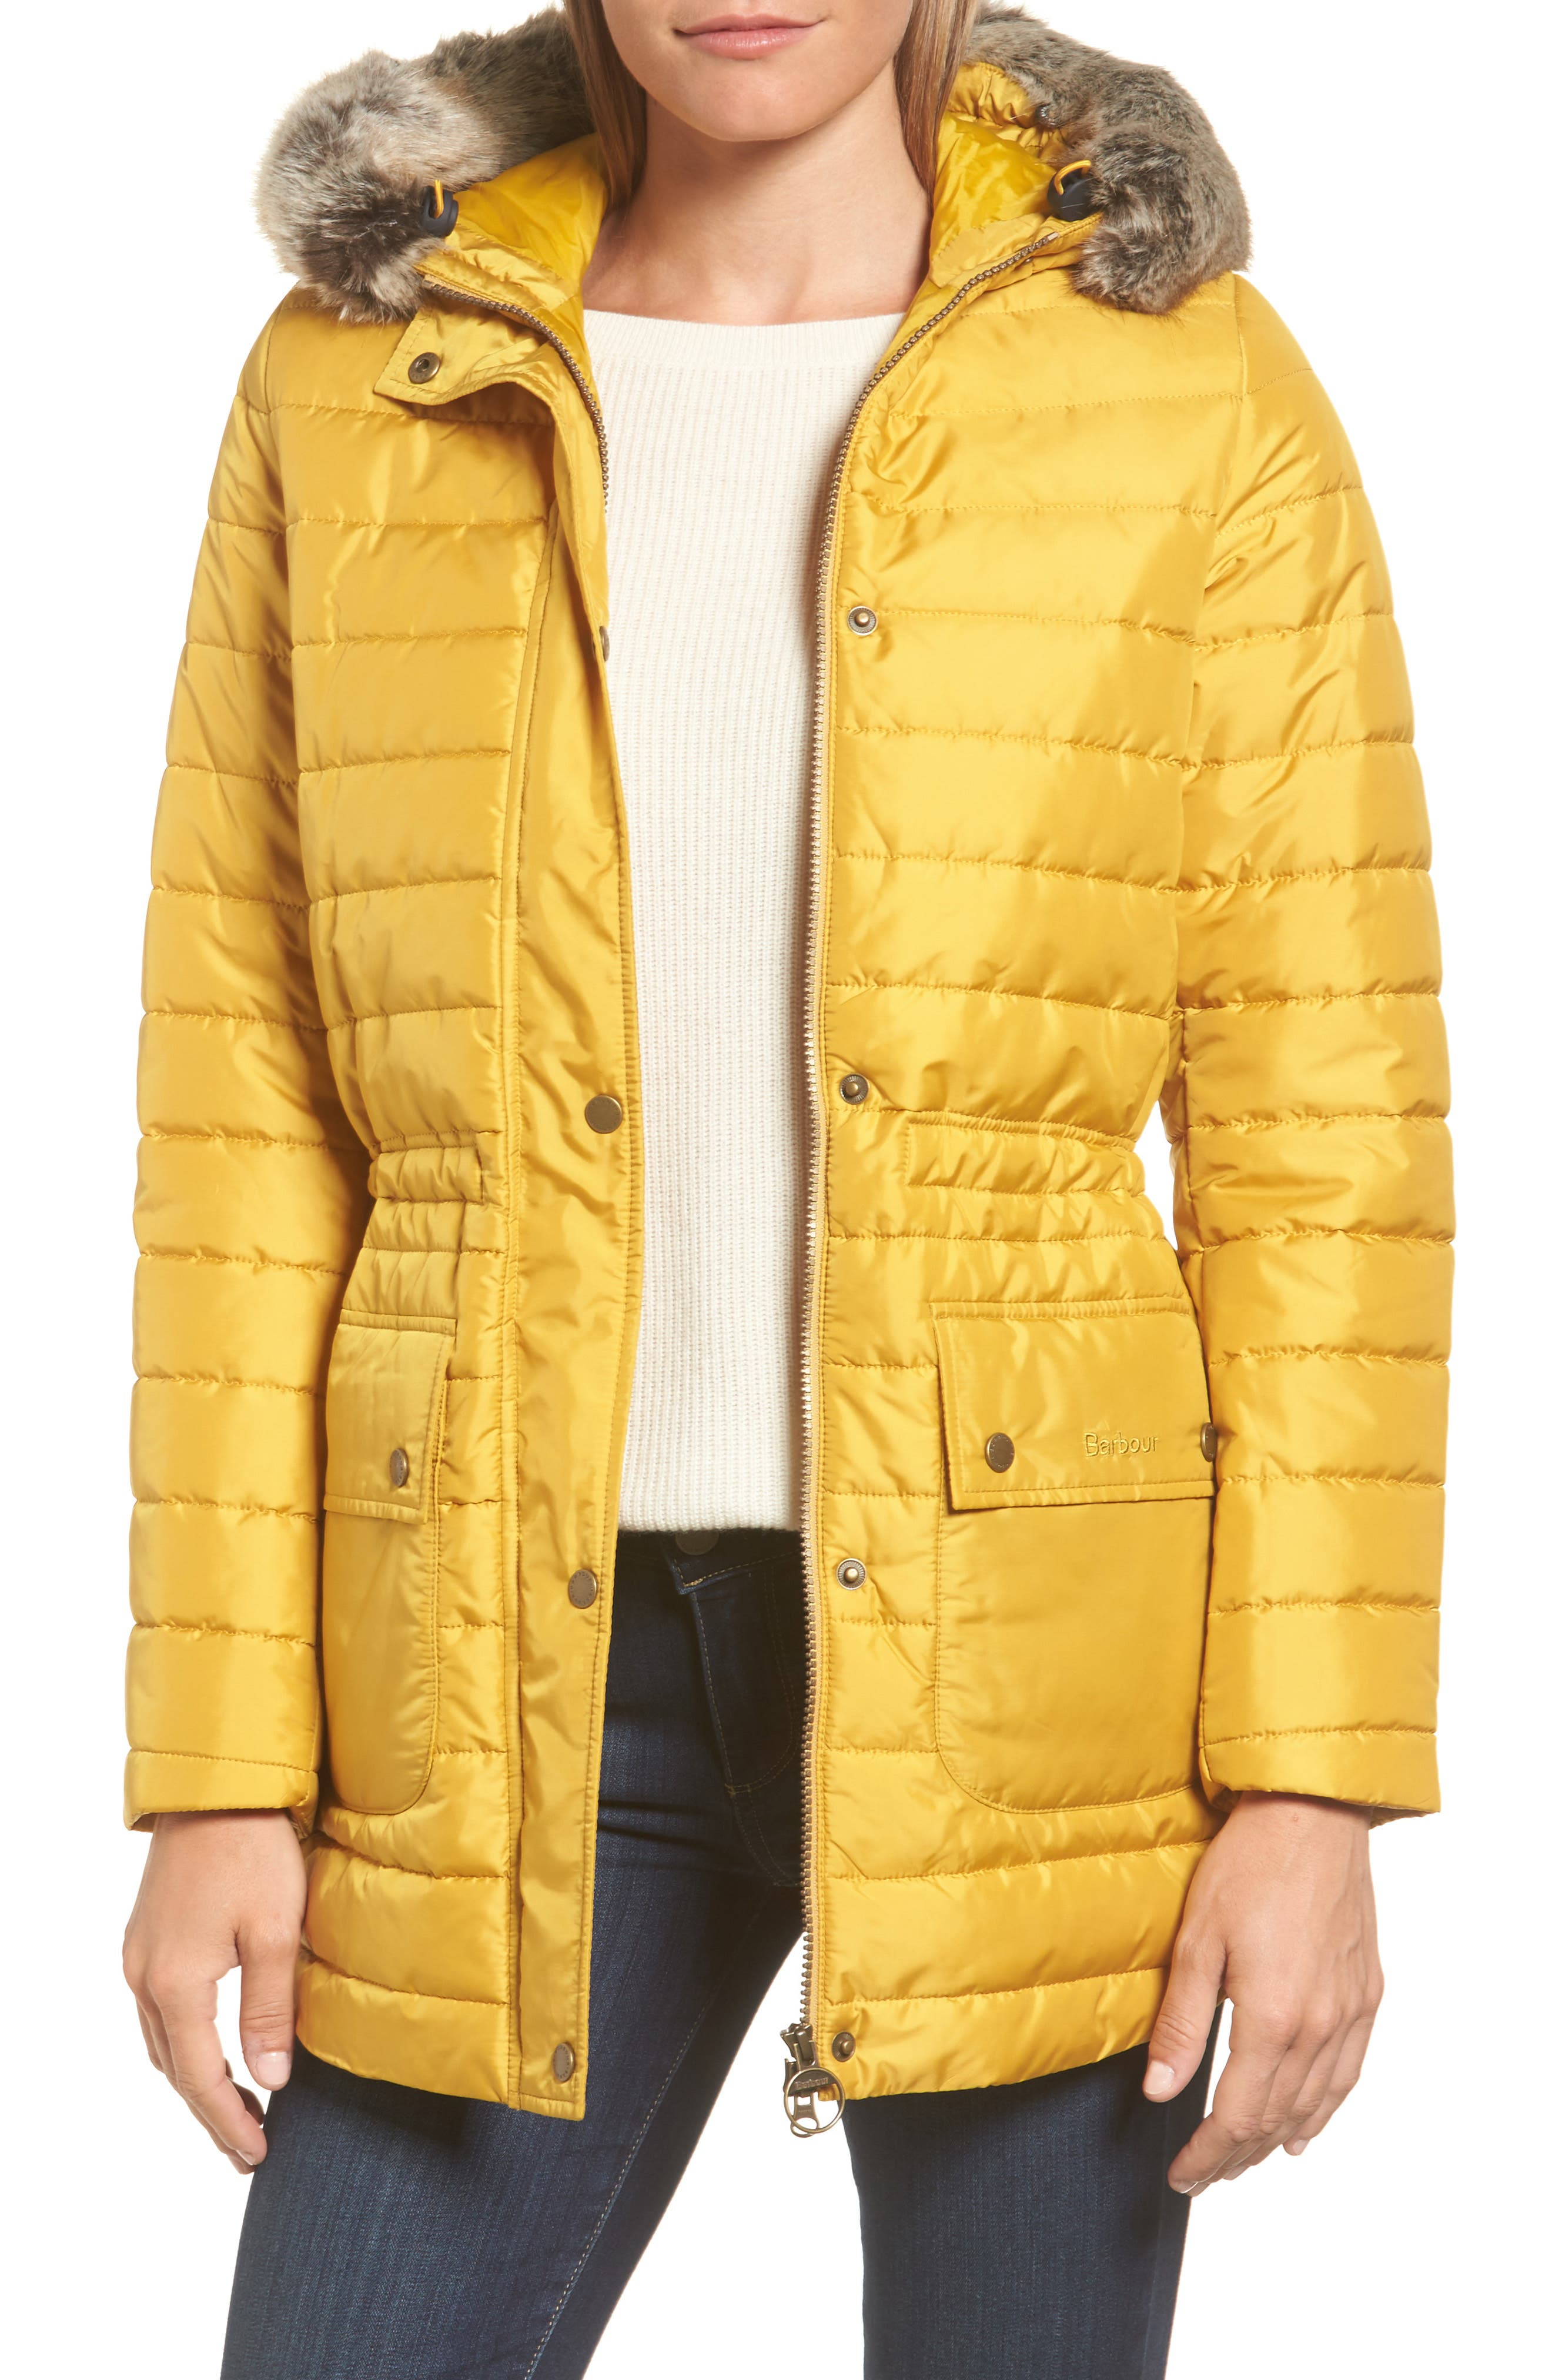 Alternate Image 1 Selected - Barbour Ascott Water Resistant Quilted Jacket